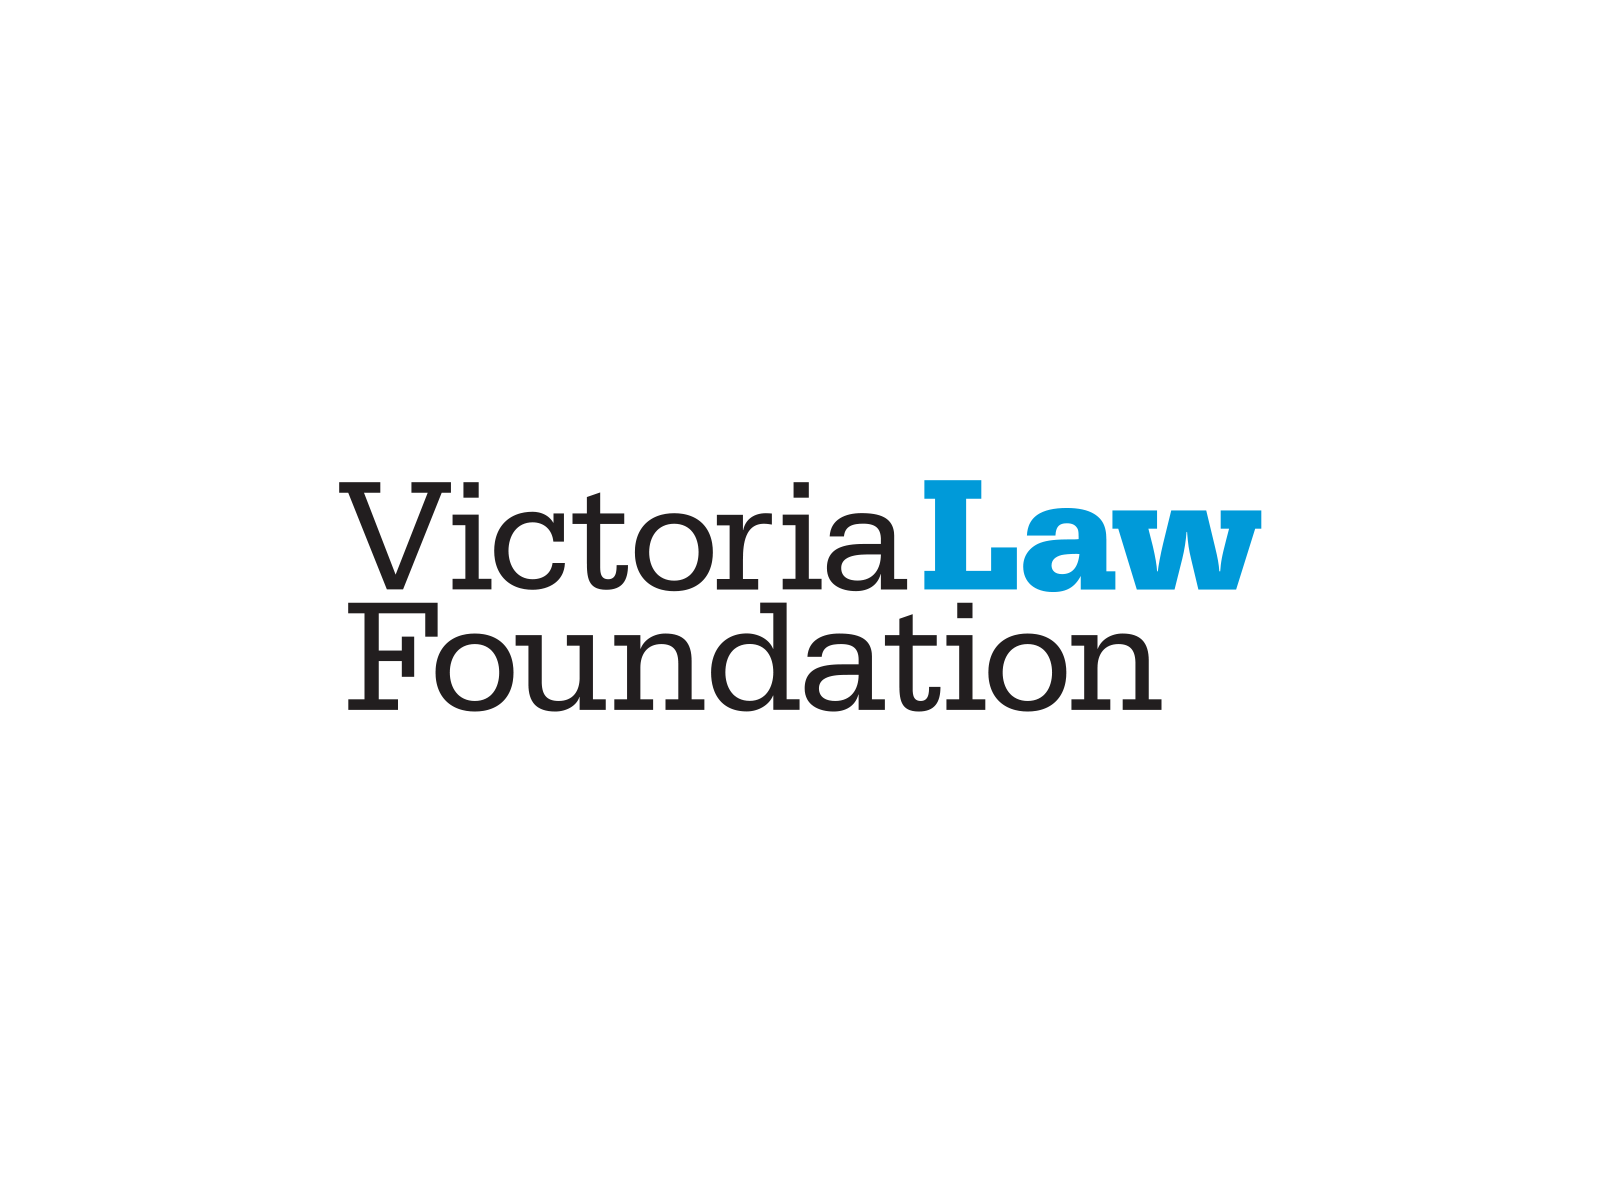 Victoria Law Foundation